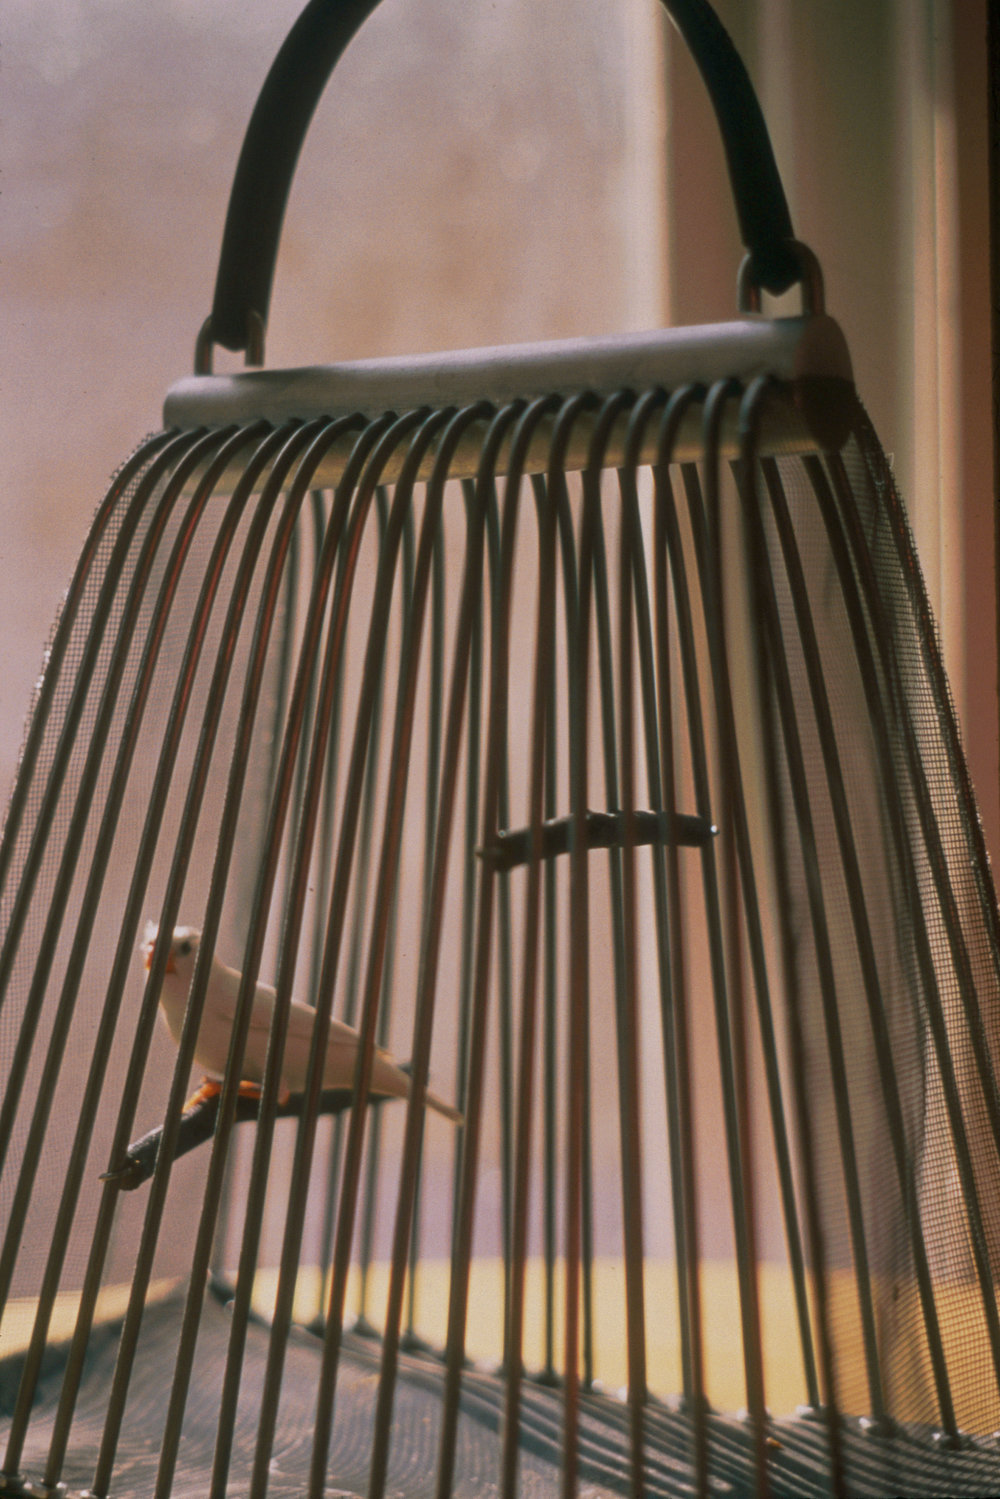 Freedom (purse)   Steel, aluminum, rubber, sticks, and finch  1993